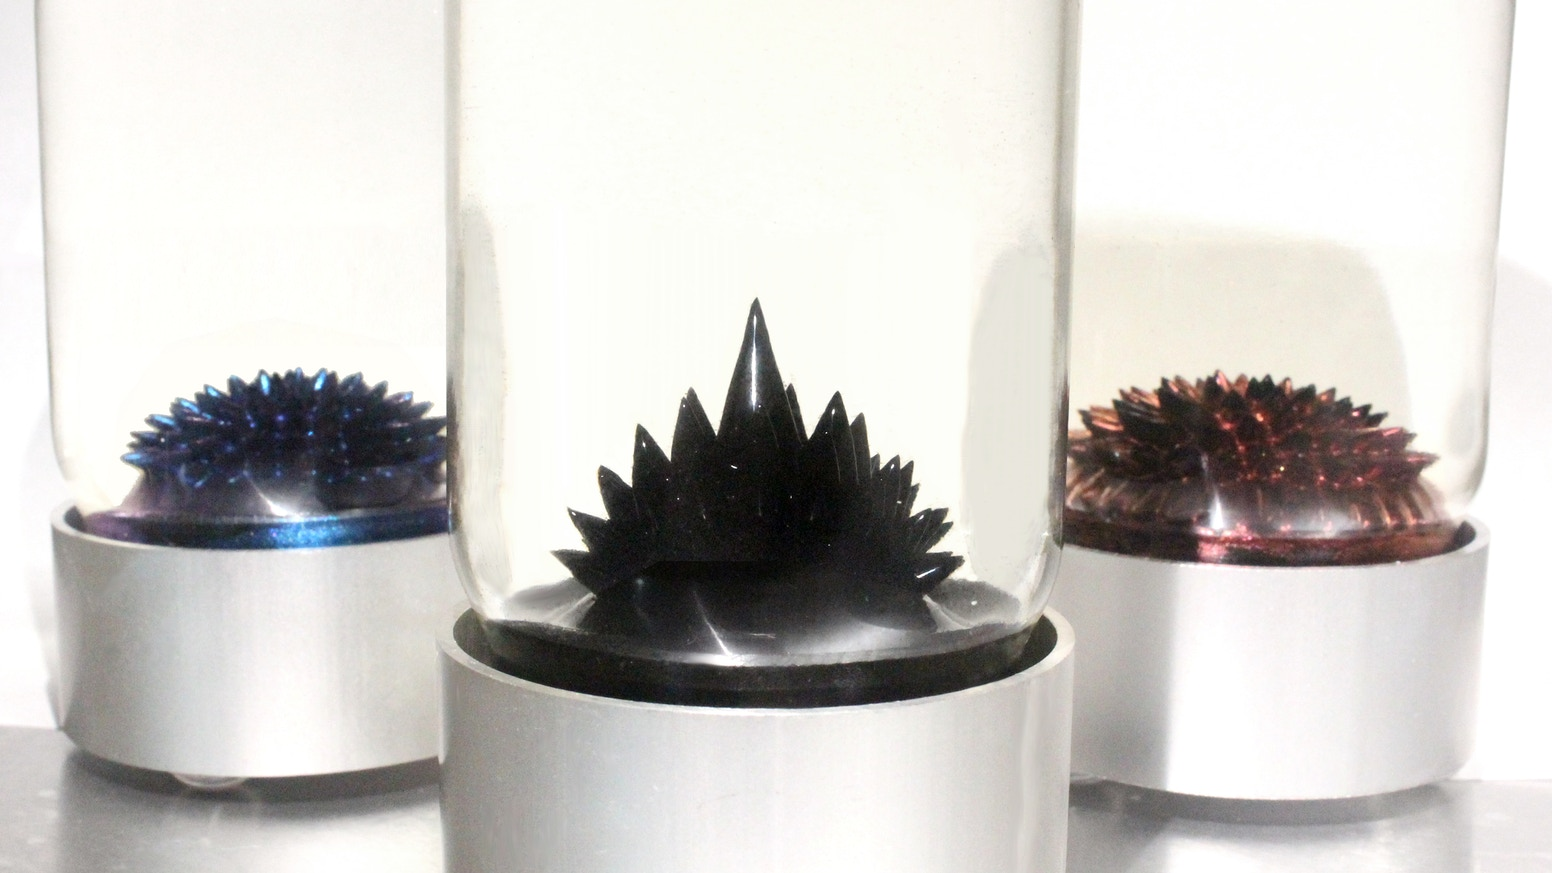 The SPIKE Ferrofluid Display is a mesmerizing interactive kinetic sculpture containing paramagnetic liquid.